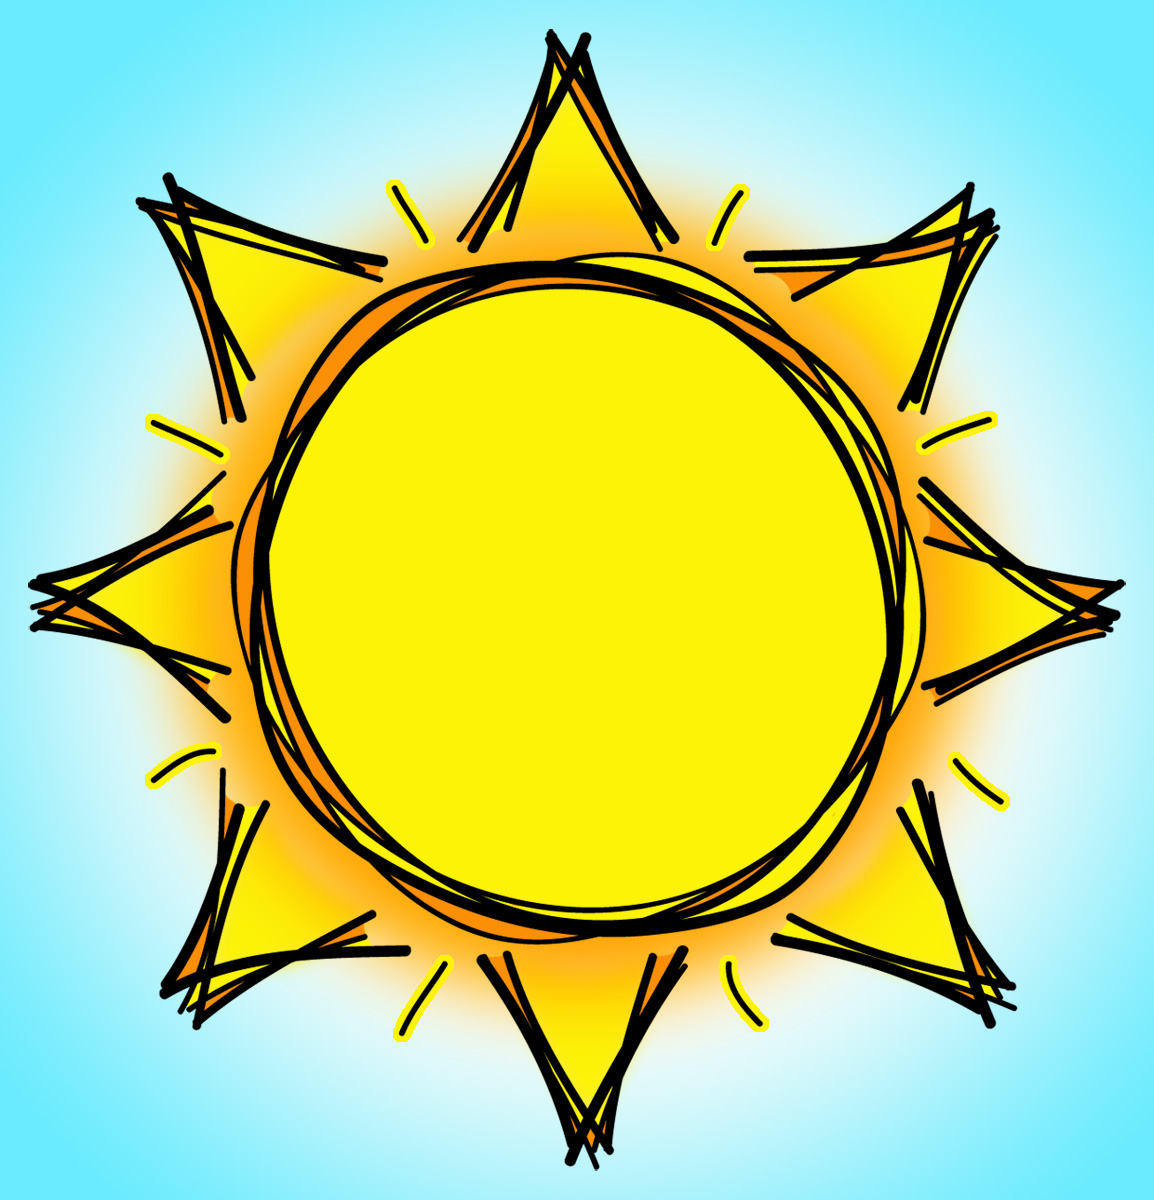 hight resolution of sun clipart black and white free clipart images 5